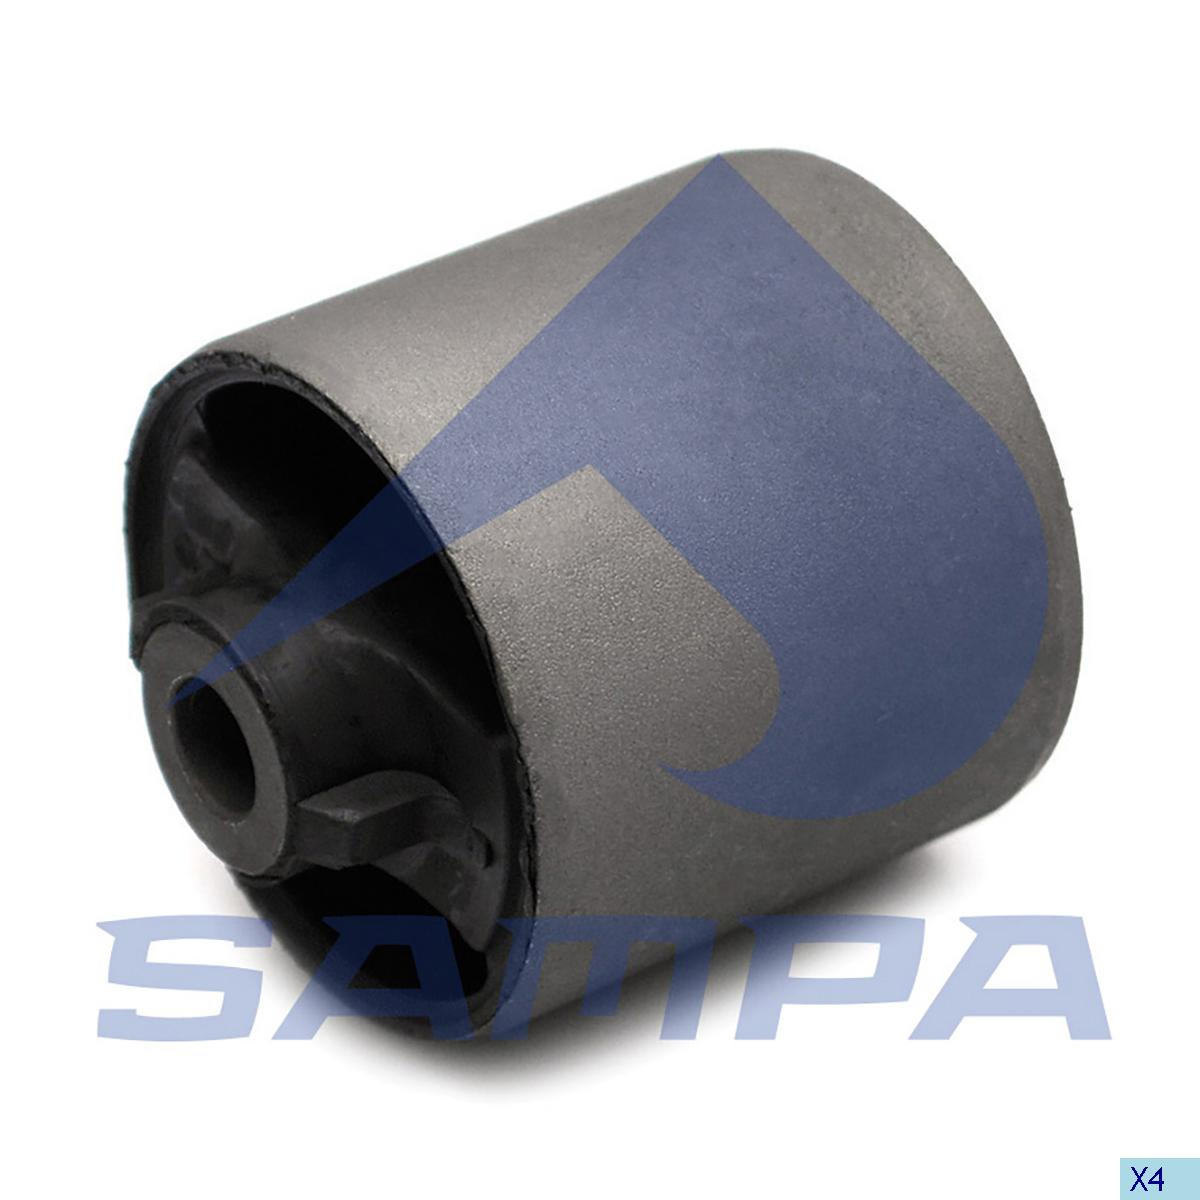 Rubber Bushing, Cab, Scania, Cab